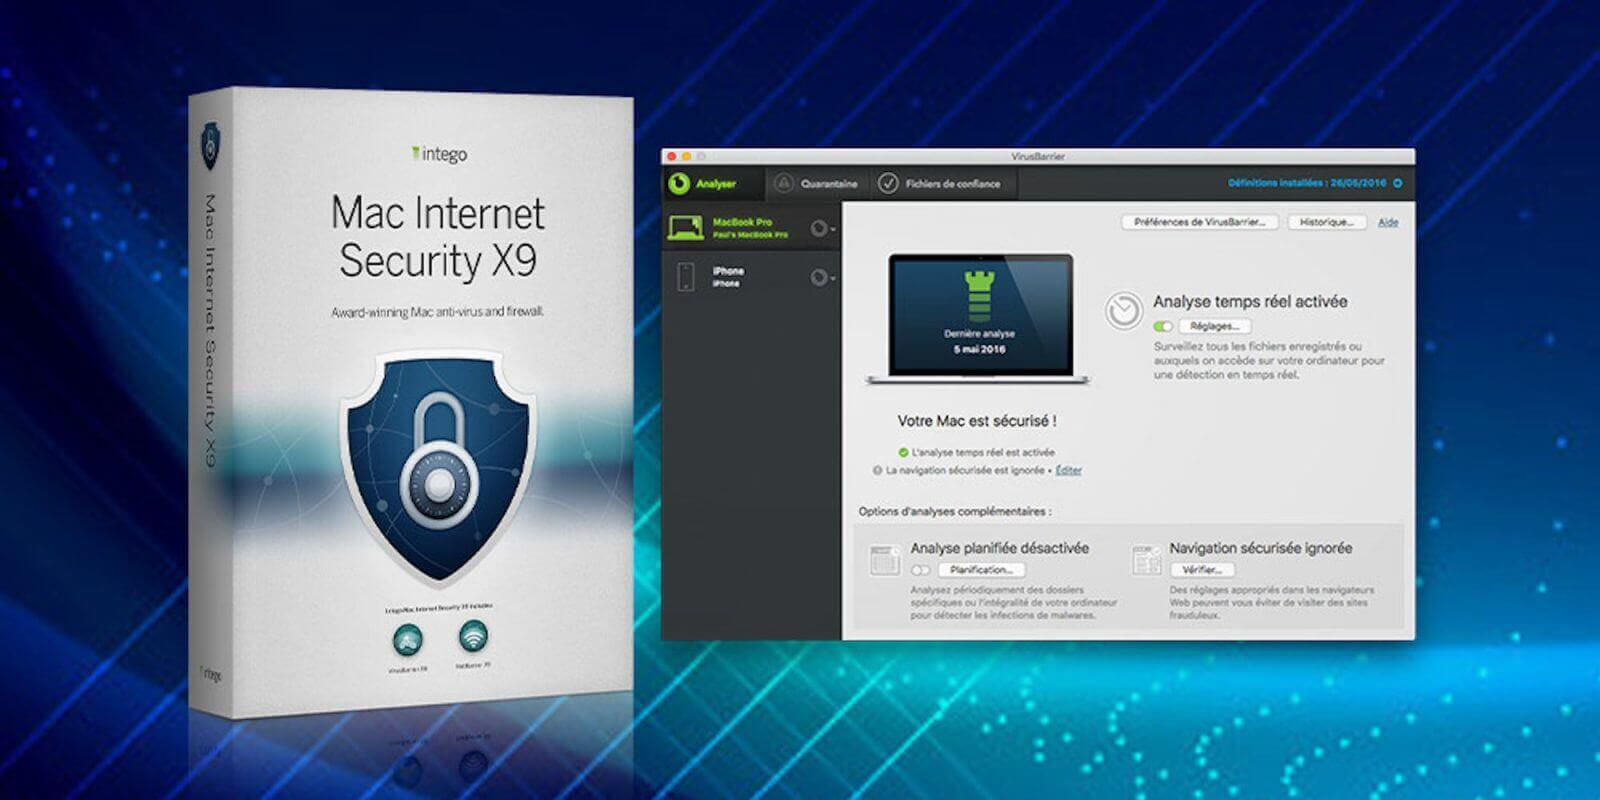 intego mac internet security x9 review